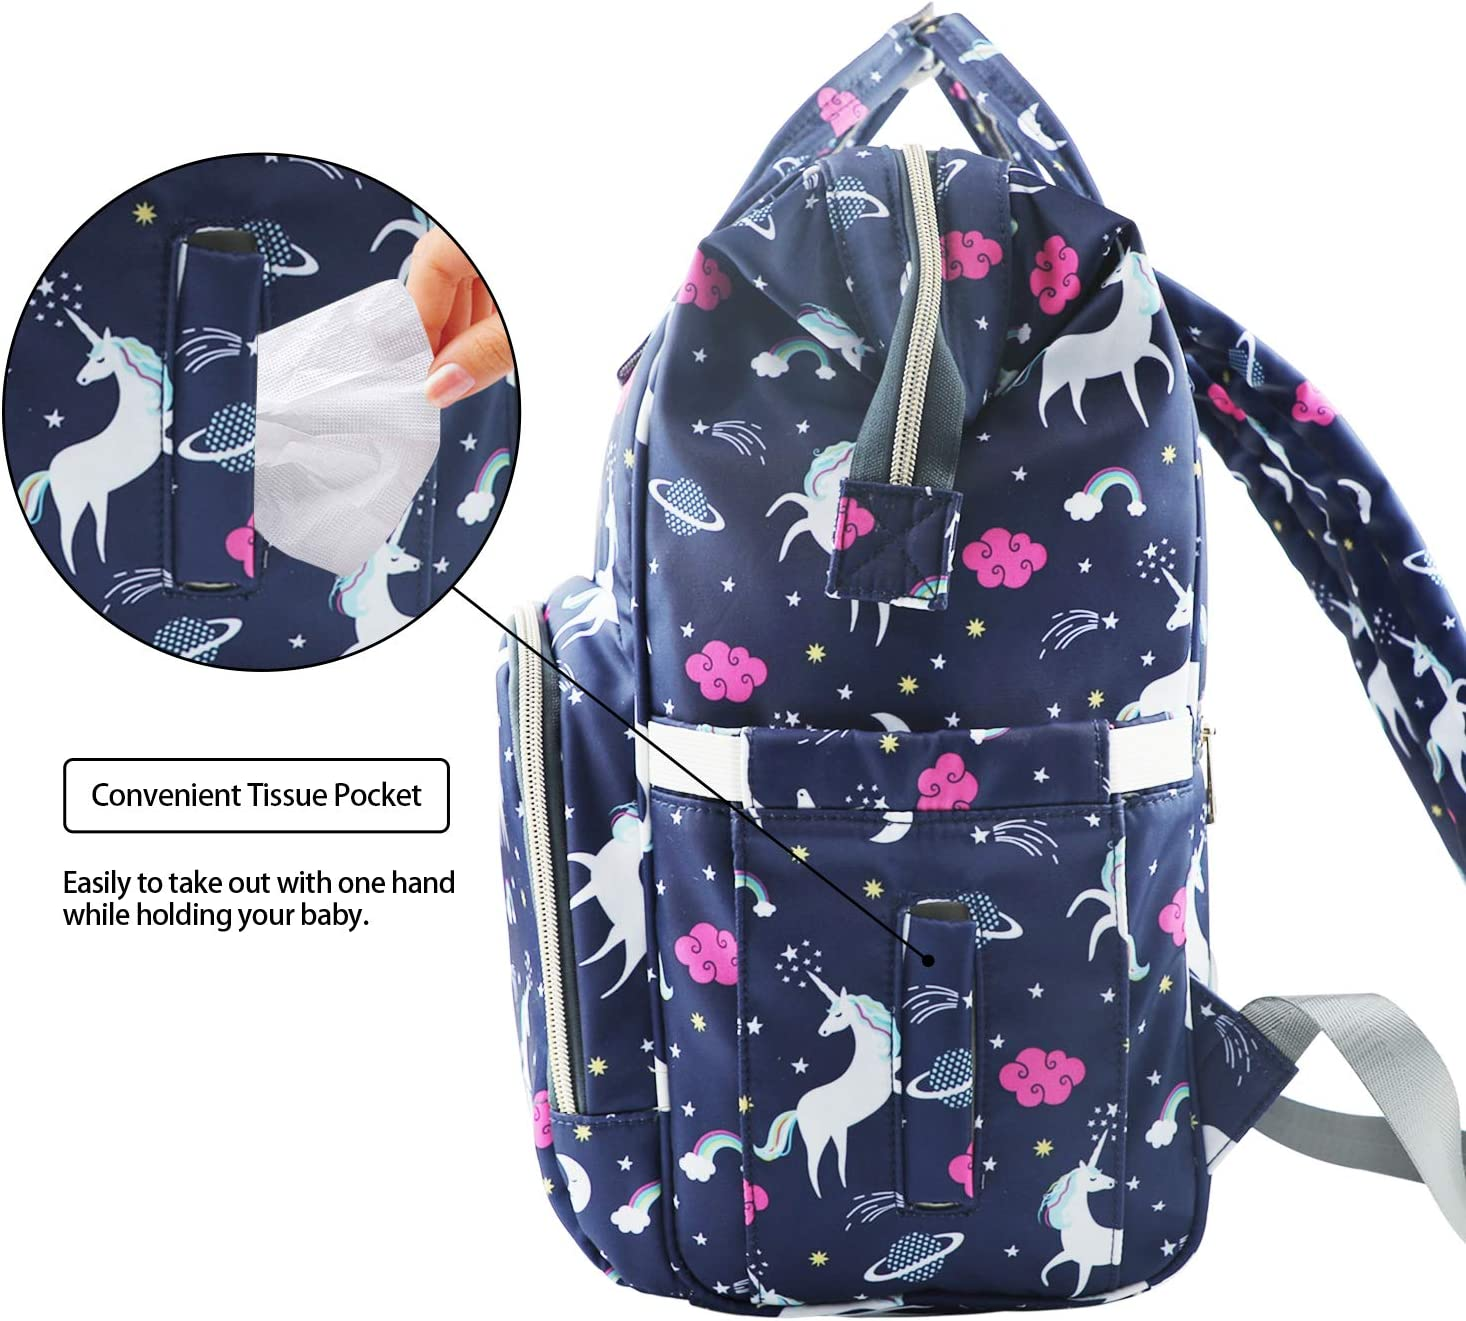 MiGer Diaper Bag Backpack for Mom Dad Pink Large Capacity Unicorn Baby Diaper Bag Bookbag for Boys Girls Maternity Nappy Bags